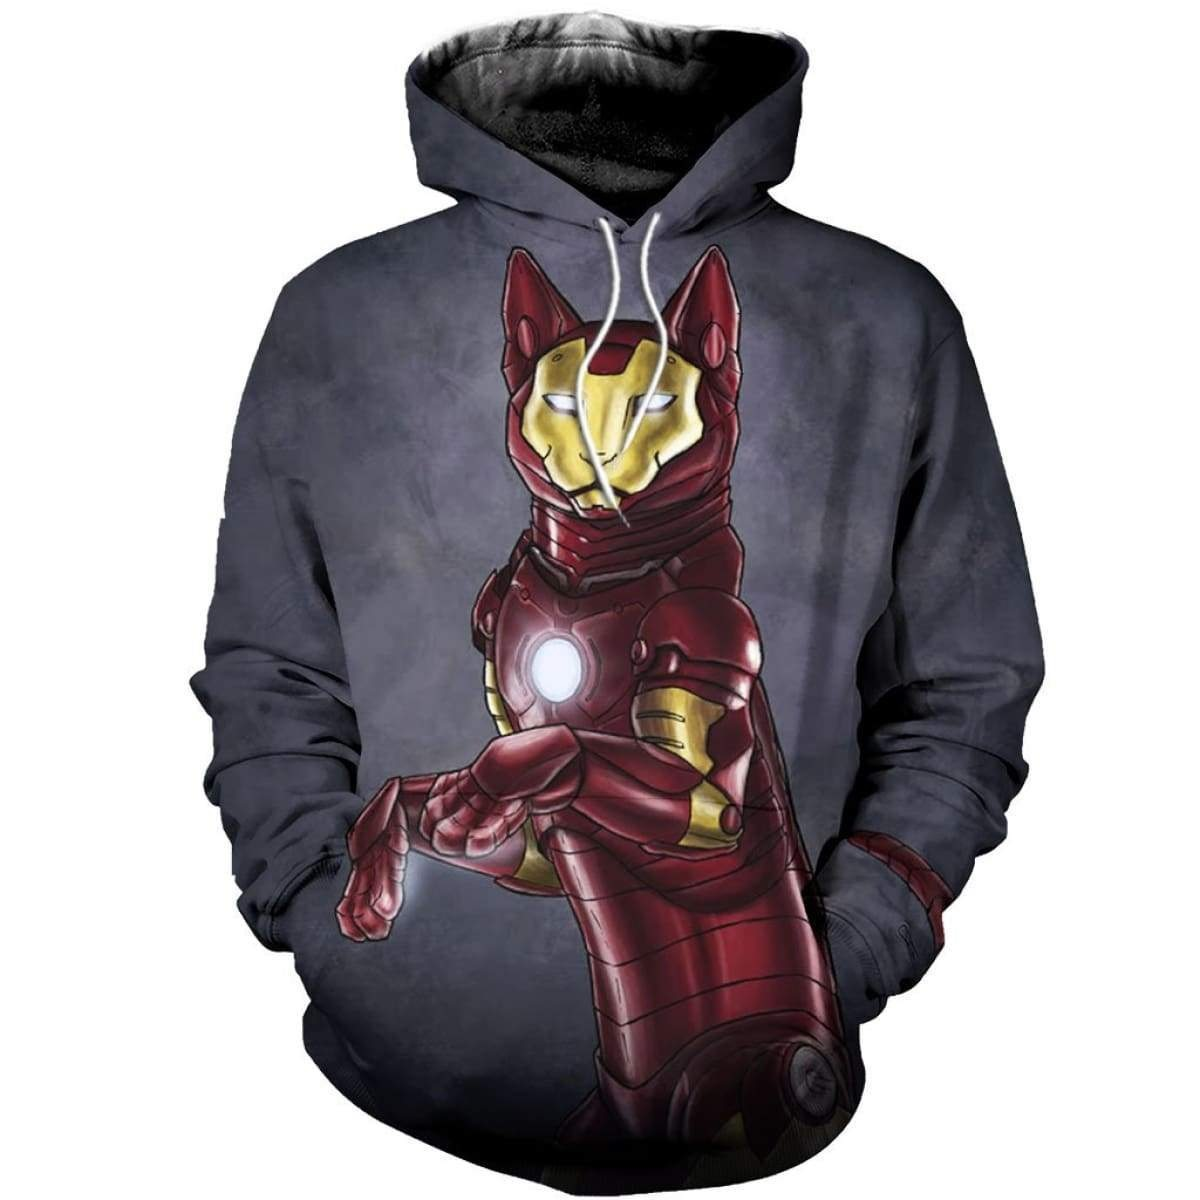 Avengers iron man iron cat all over print hoodie